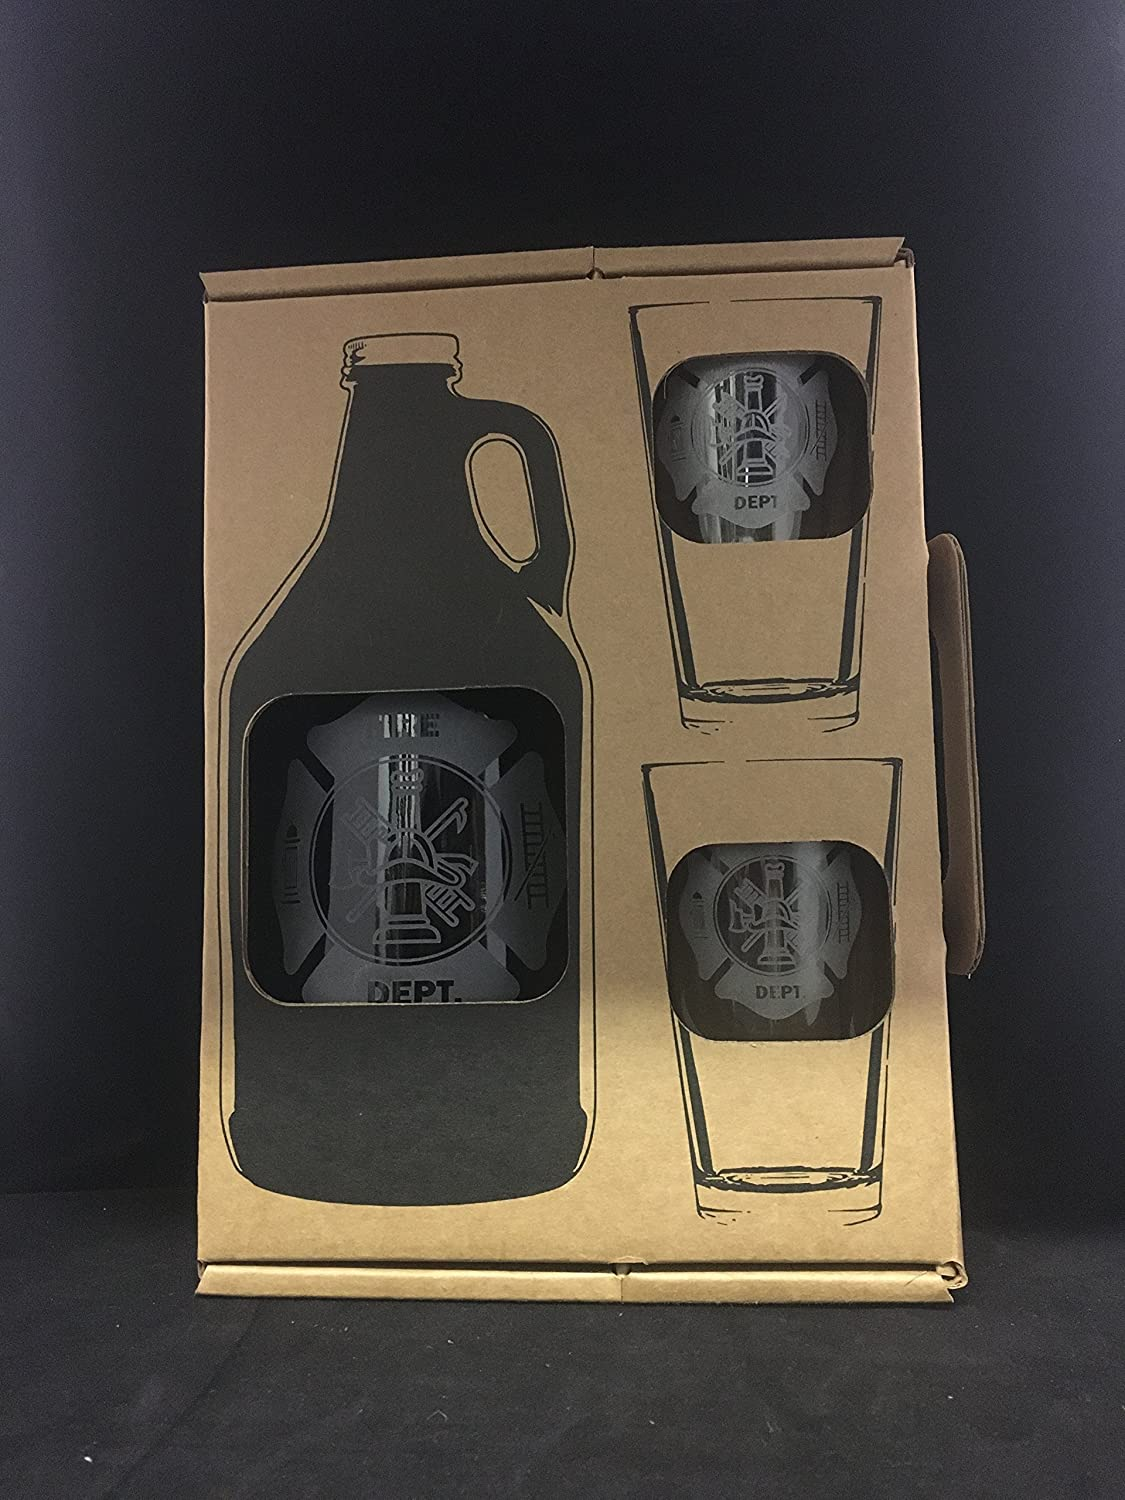 Amazon.com: Fire Department, Beer growler, Fireman Gift, Fireman ...